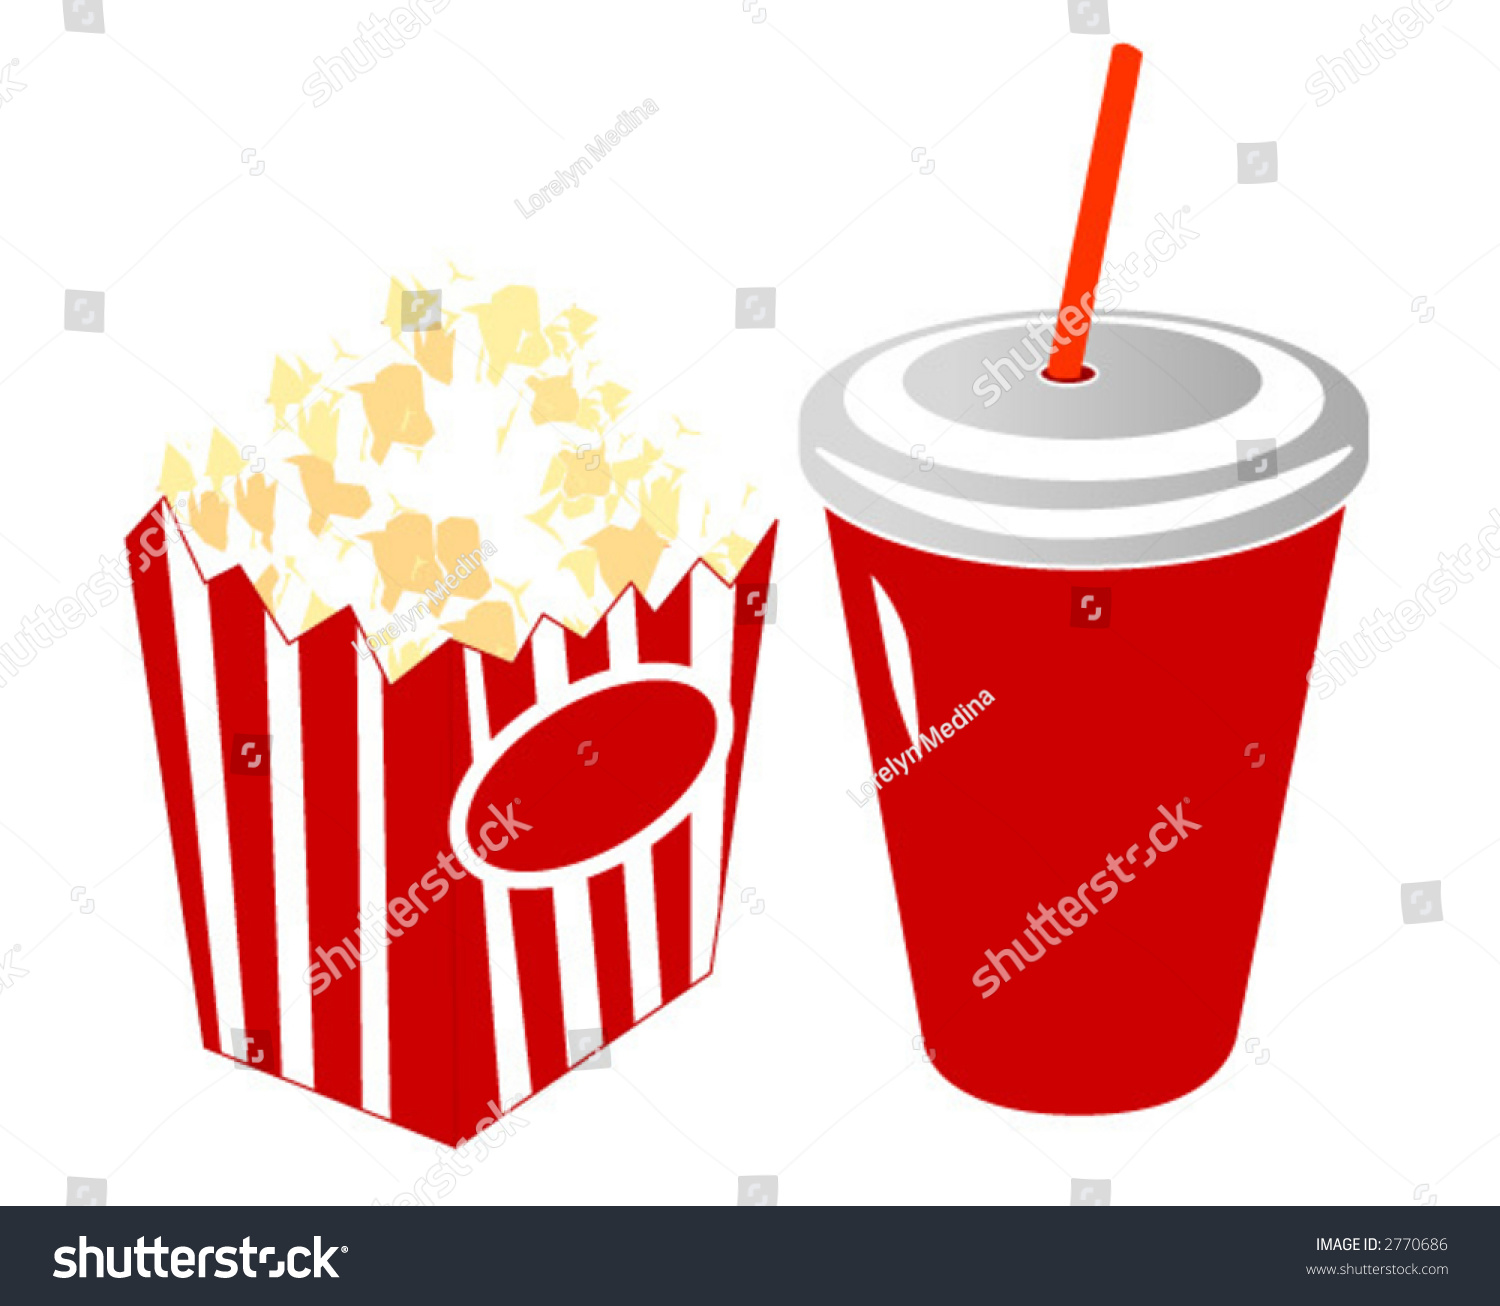 Movie Popcorn Soda Stock Vector 2770686 - Shutterstock